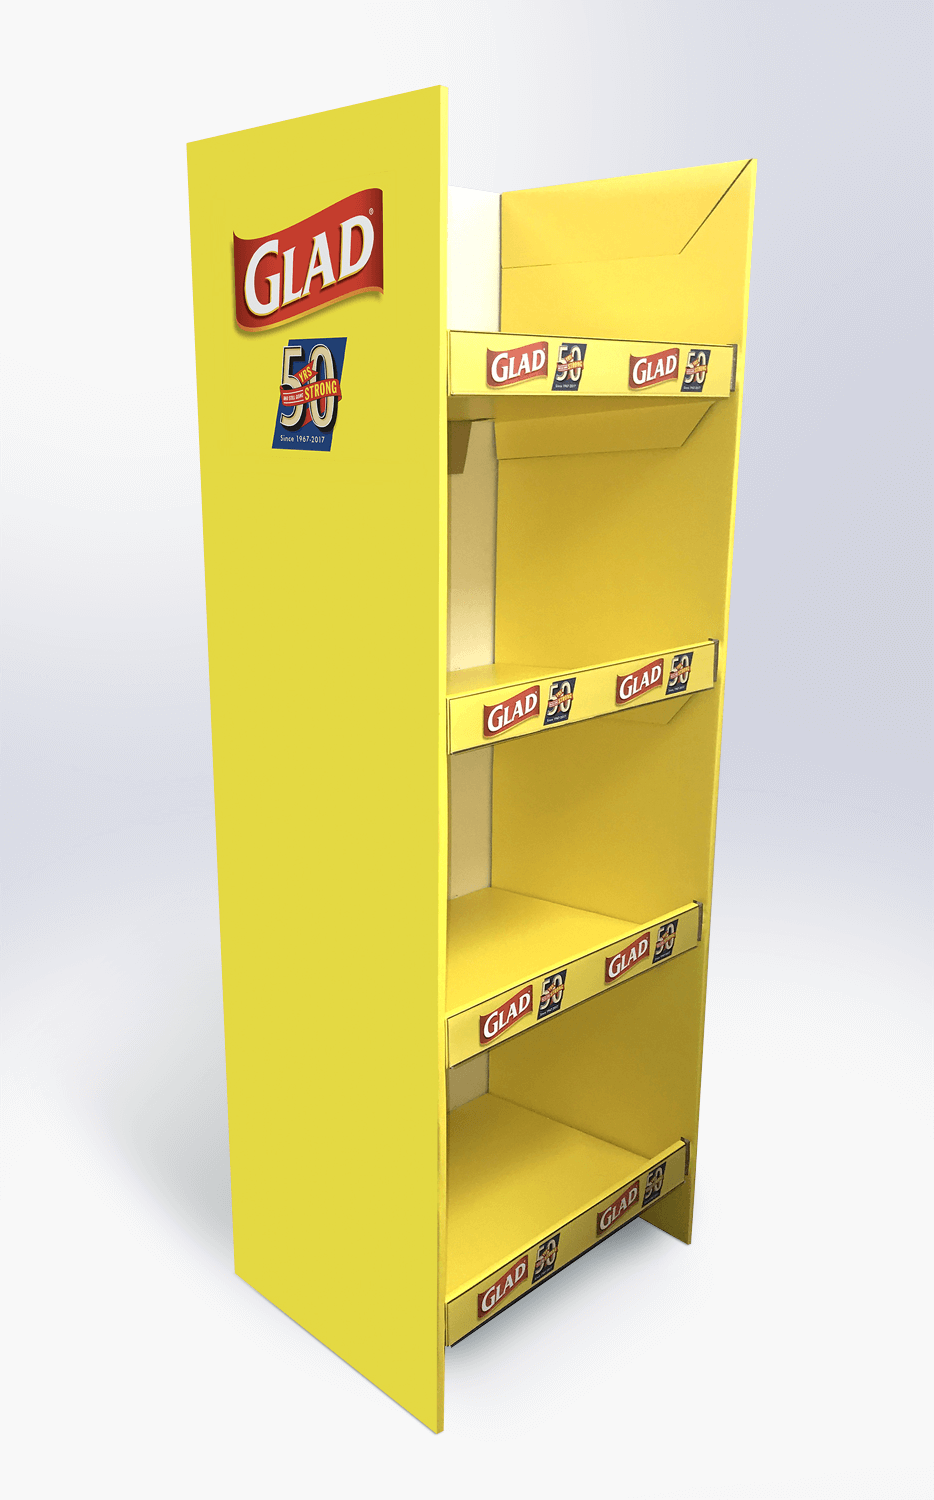 Cardboard grocery display    Display design and manufacture | Visuals | Art  | Print | Kit, pack and despatch